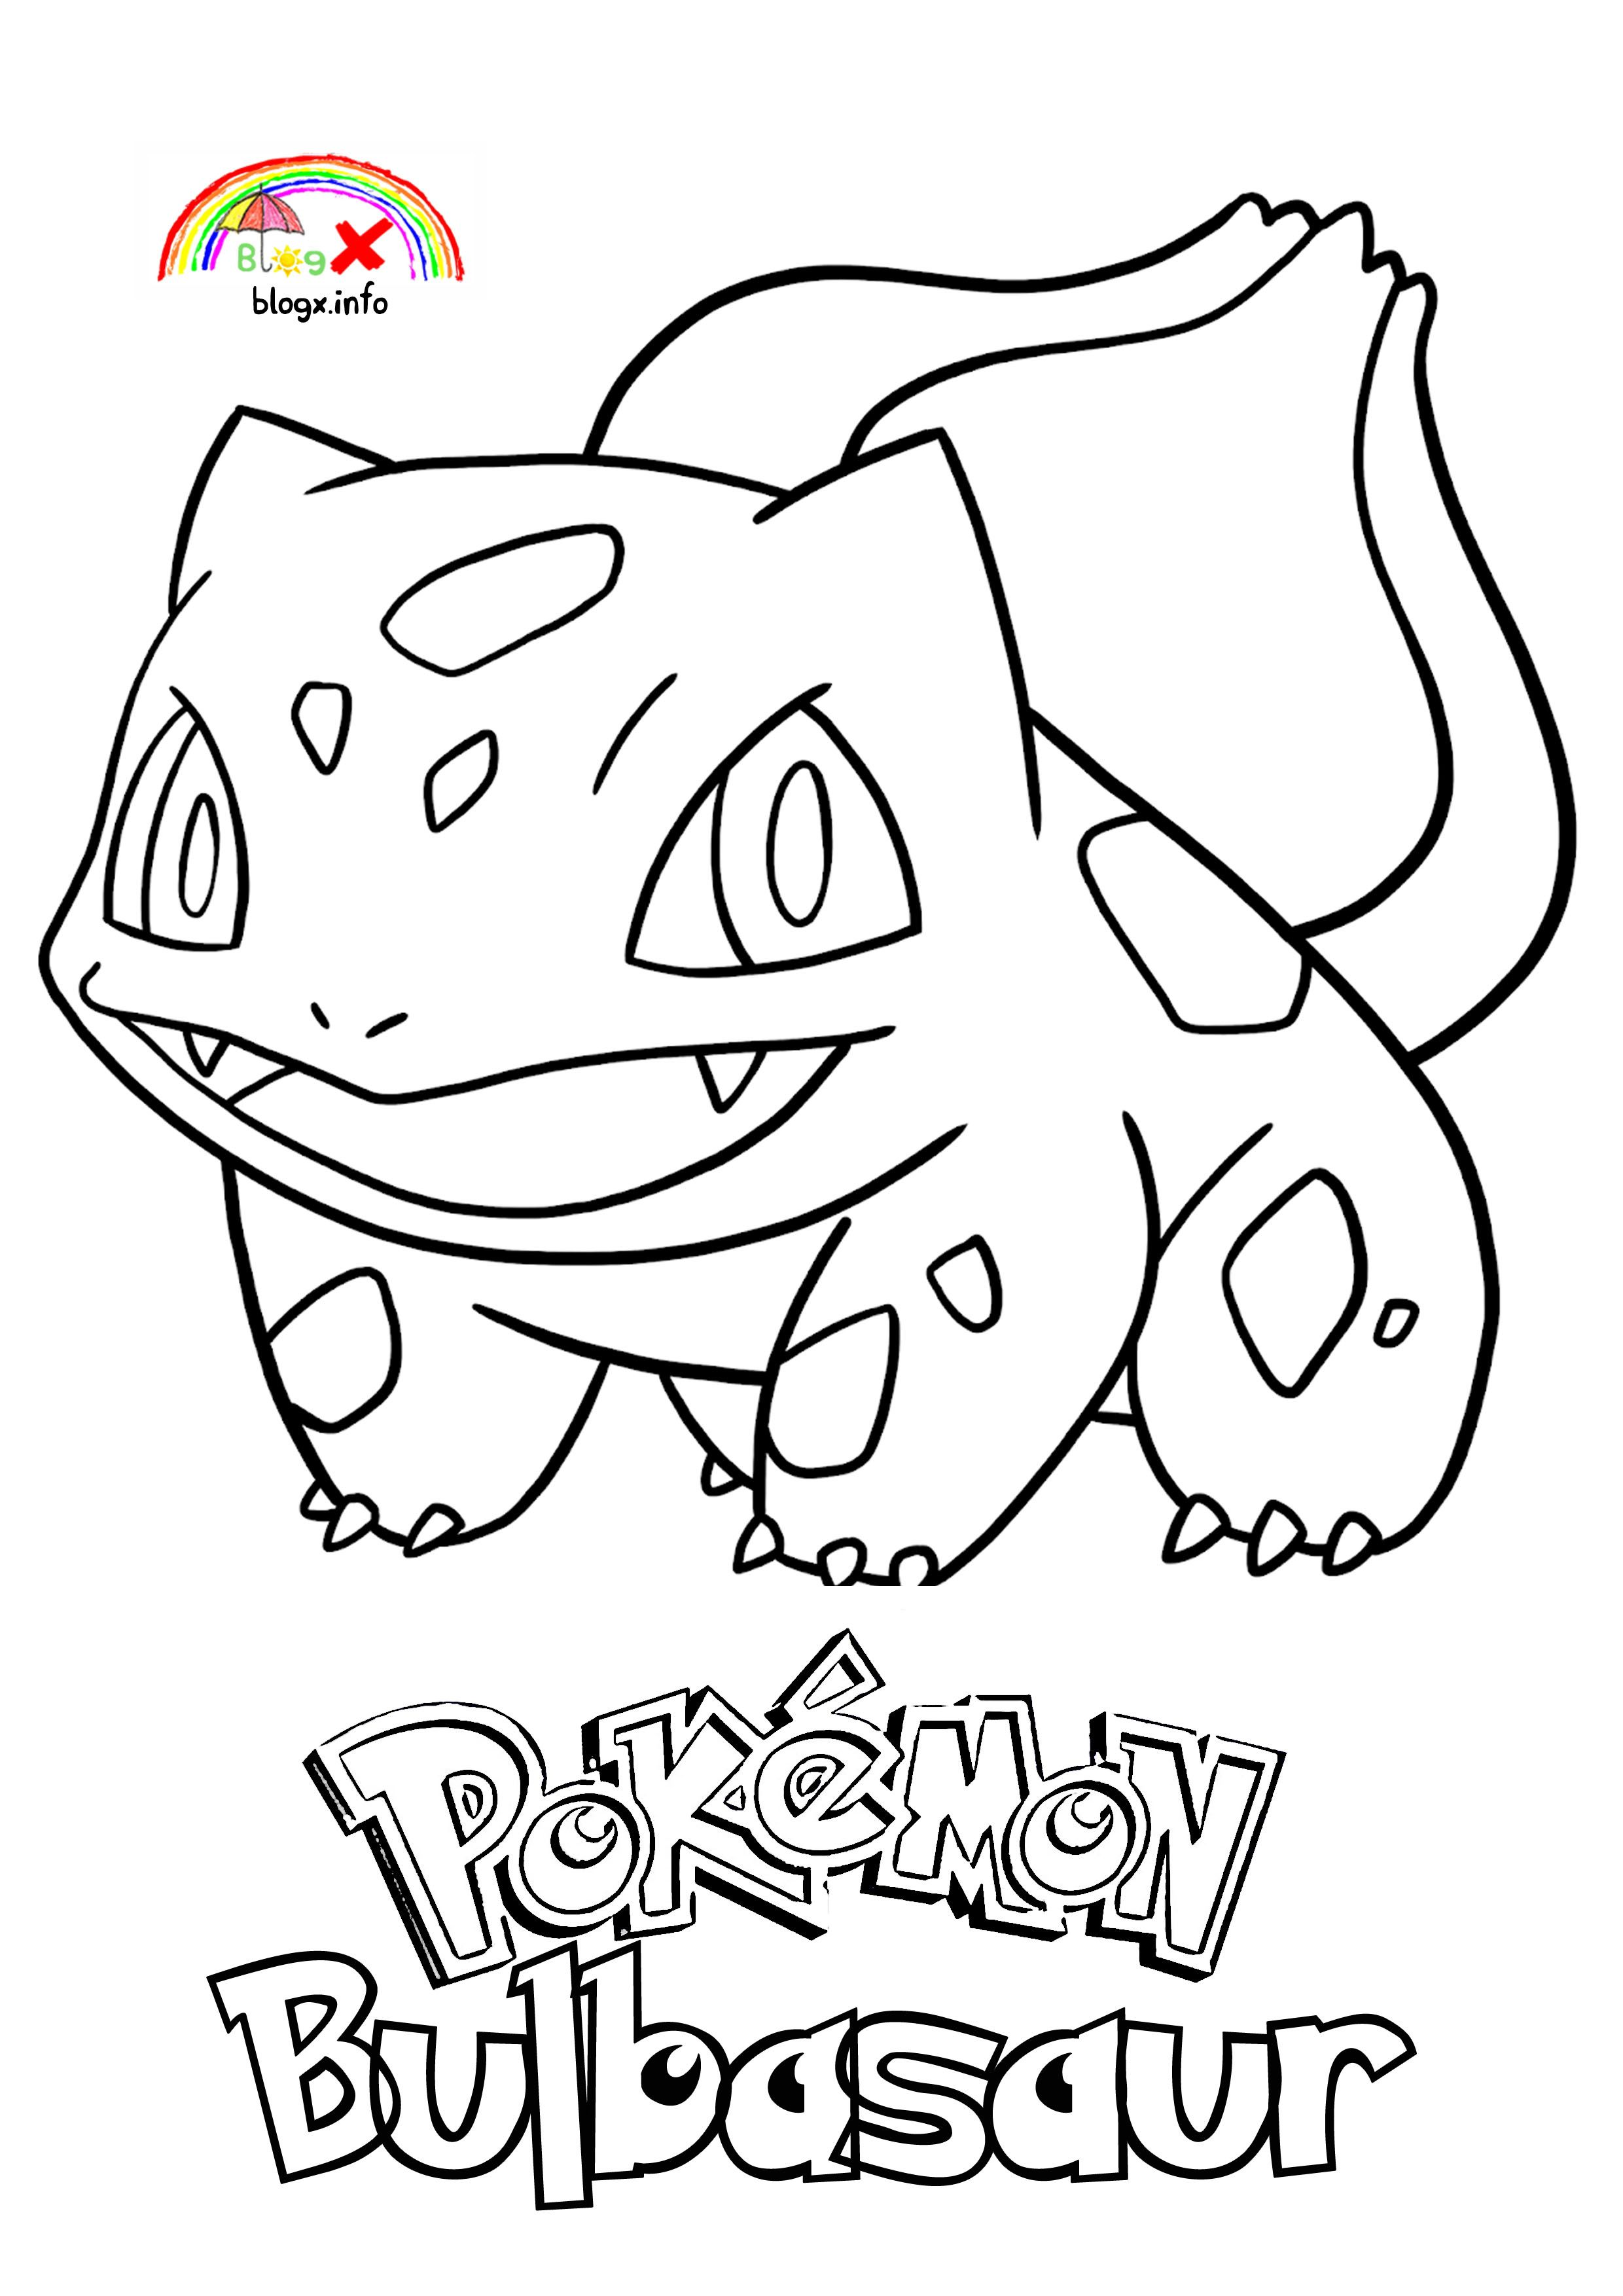 Bulbasaur Coloring Page Blogx Coloring Pages Pokemon Coloring Coloring Pages For Girls